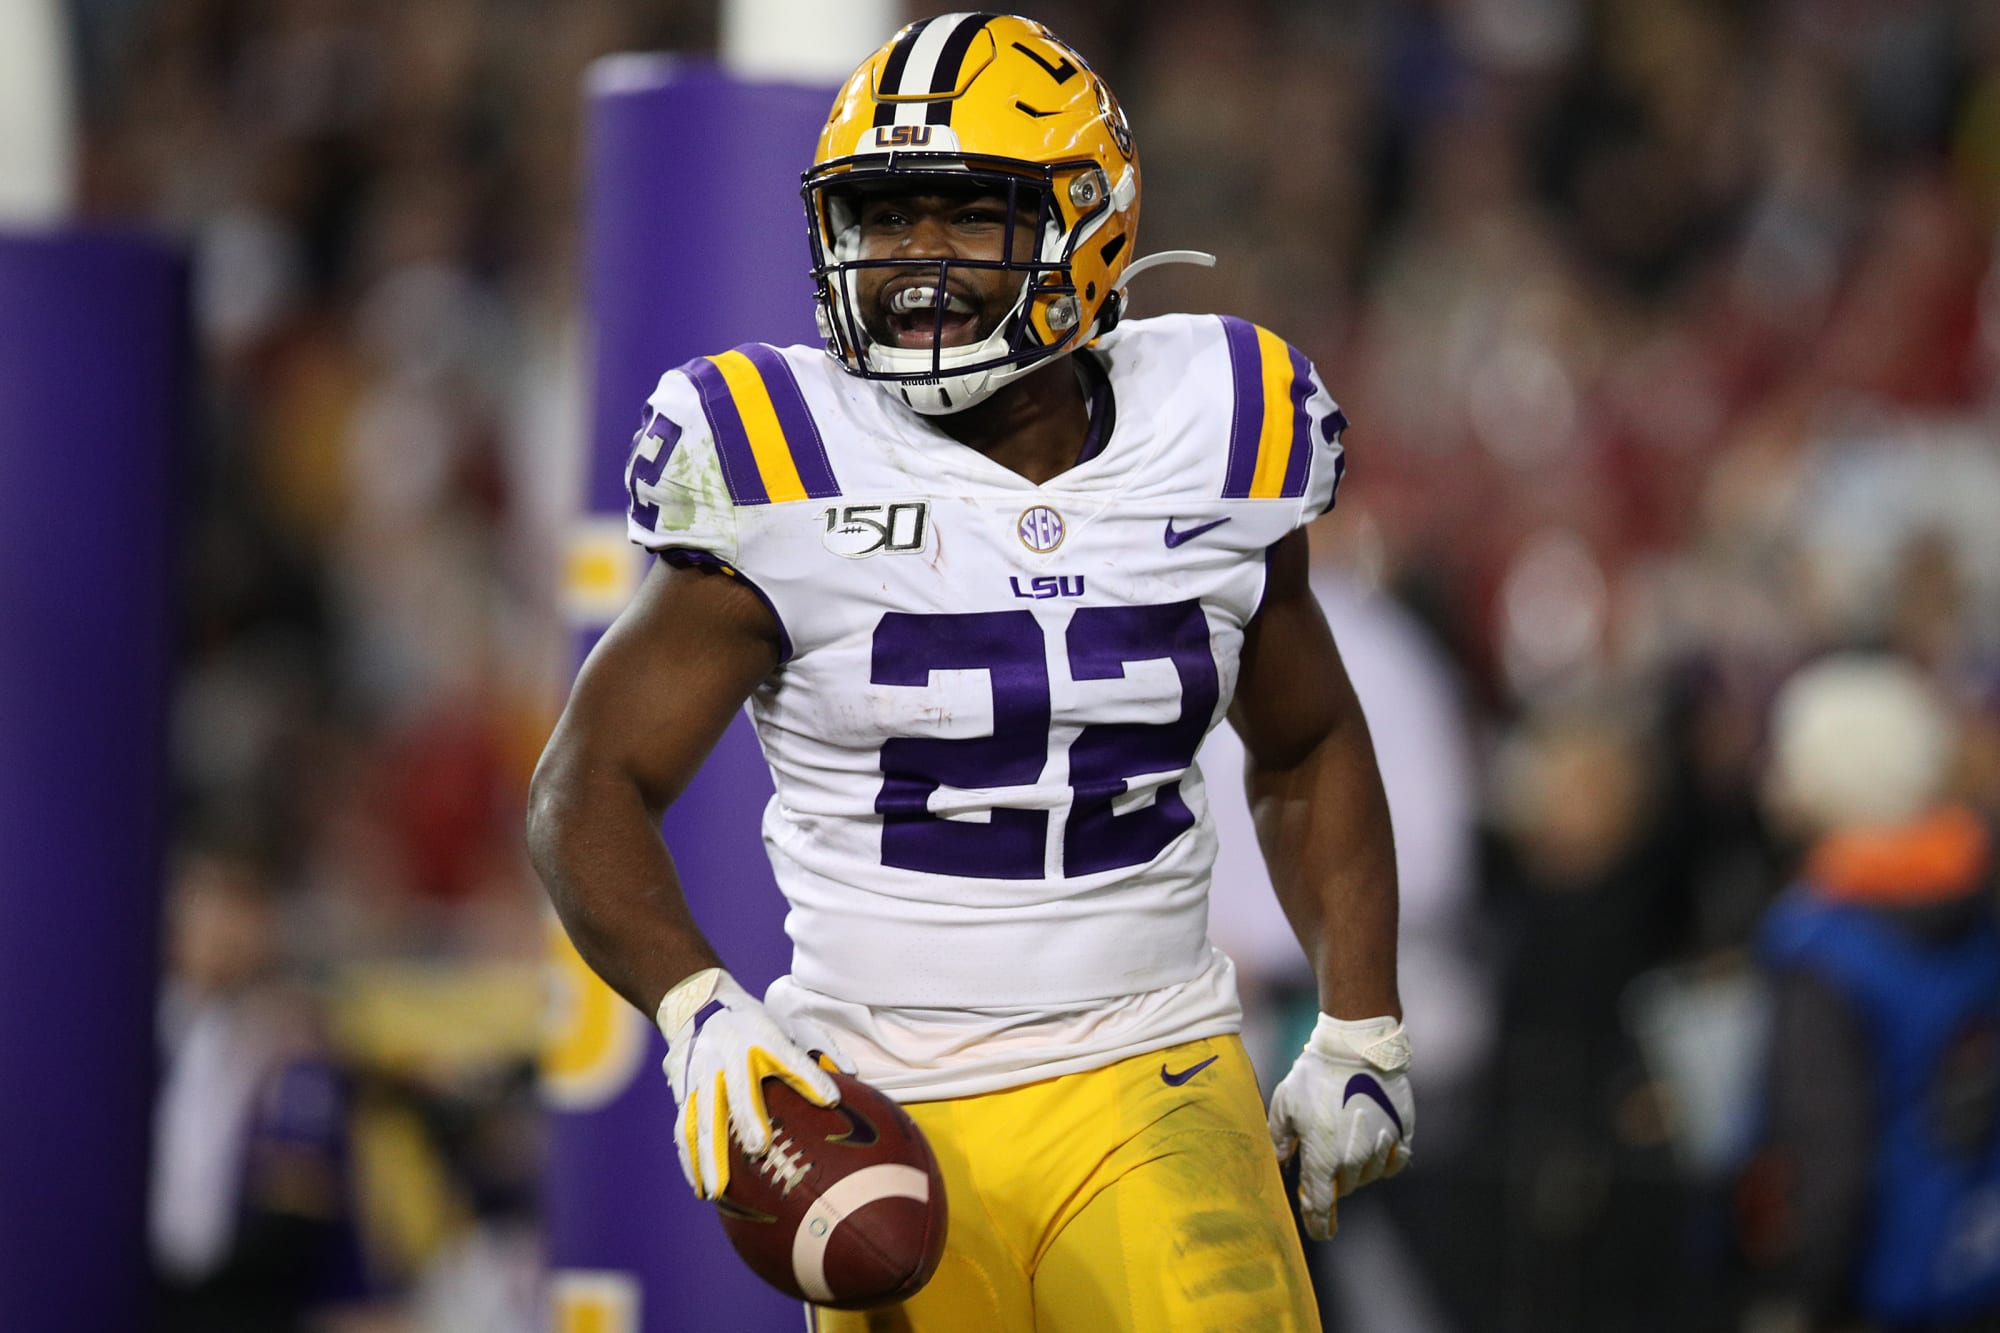 LSU Football: The best run of Clyde Edwards-Helaire's career almost didn't happen